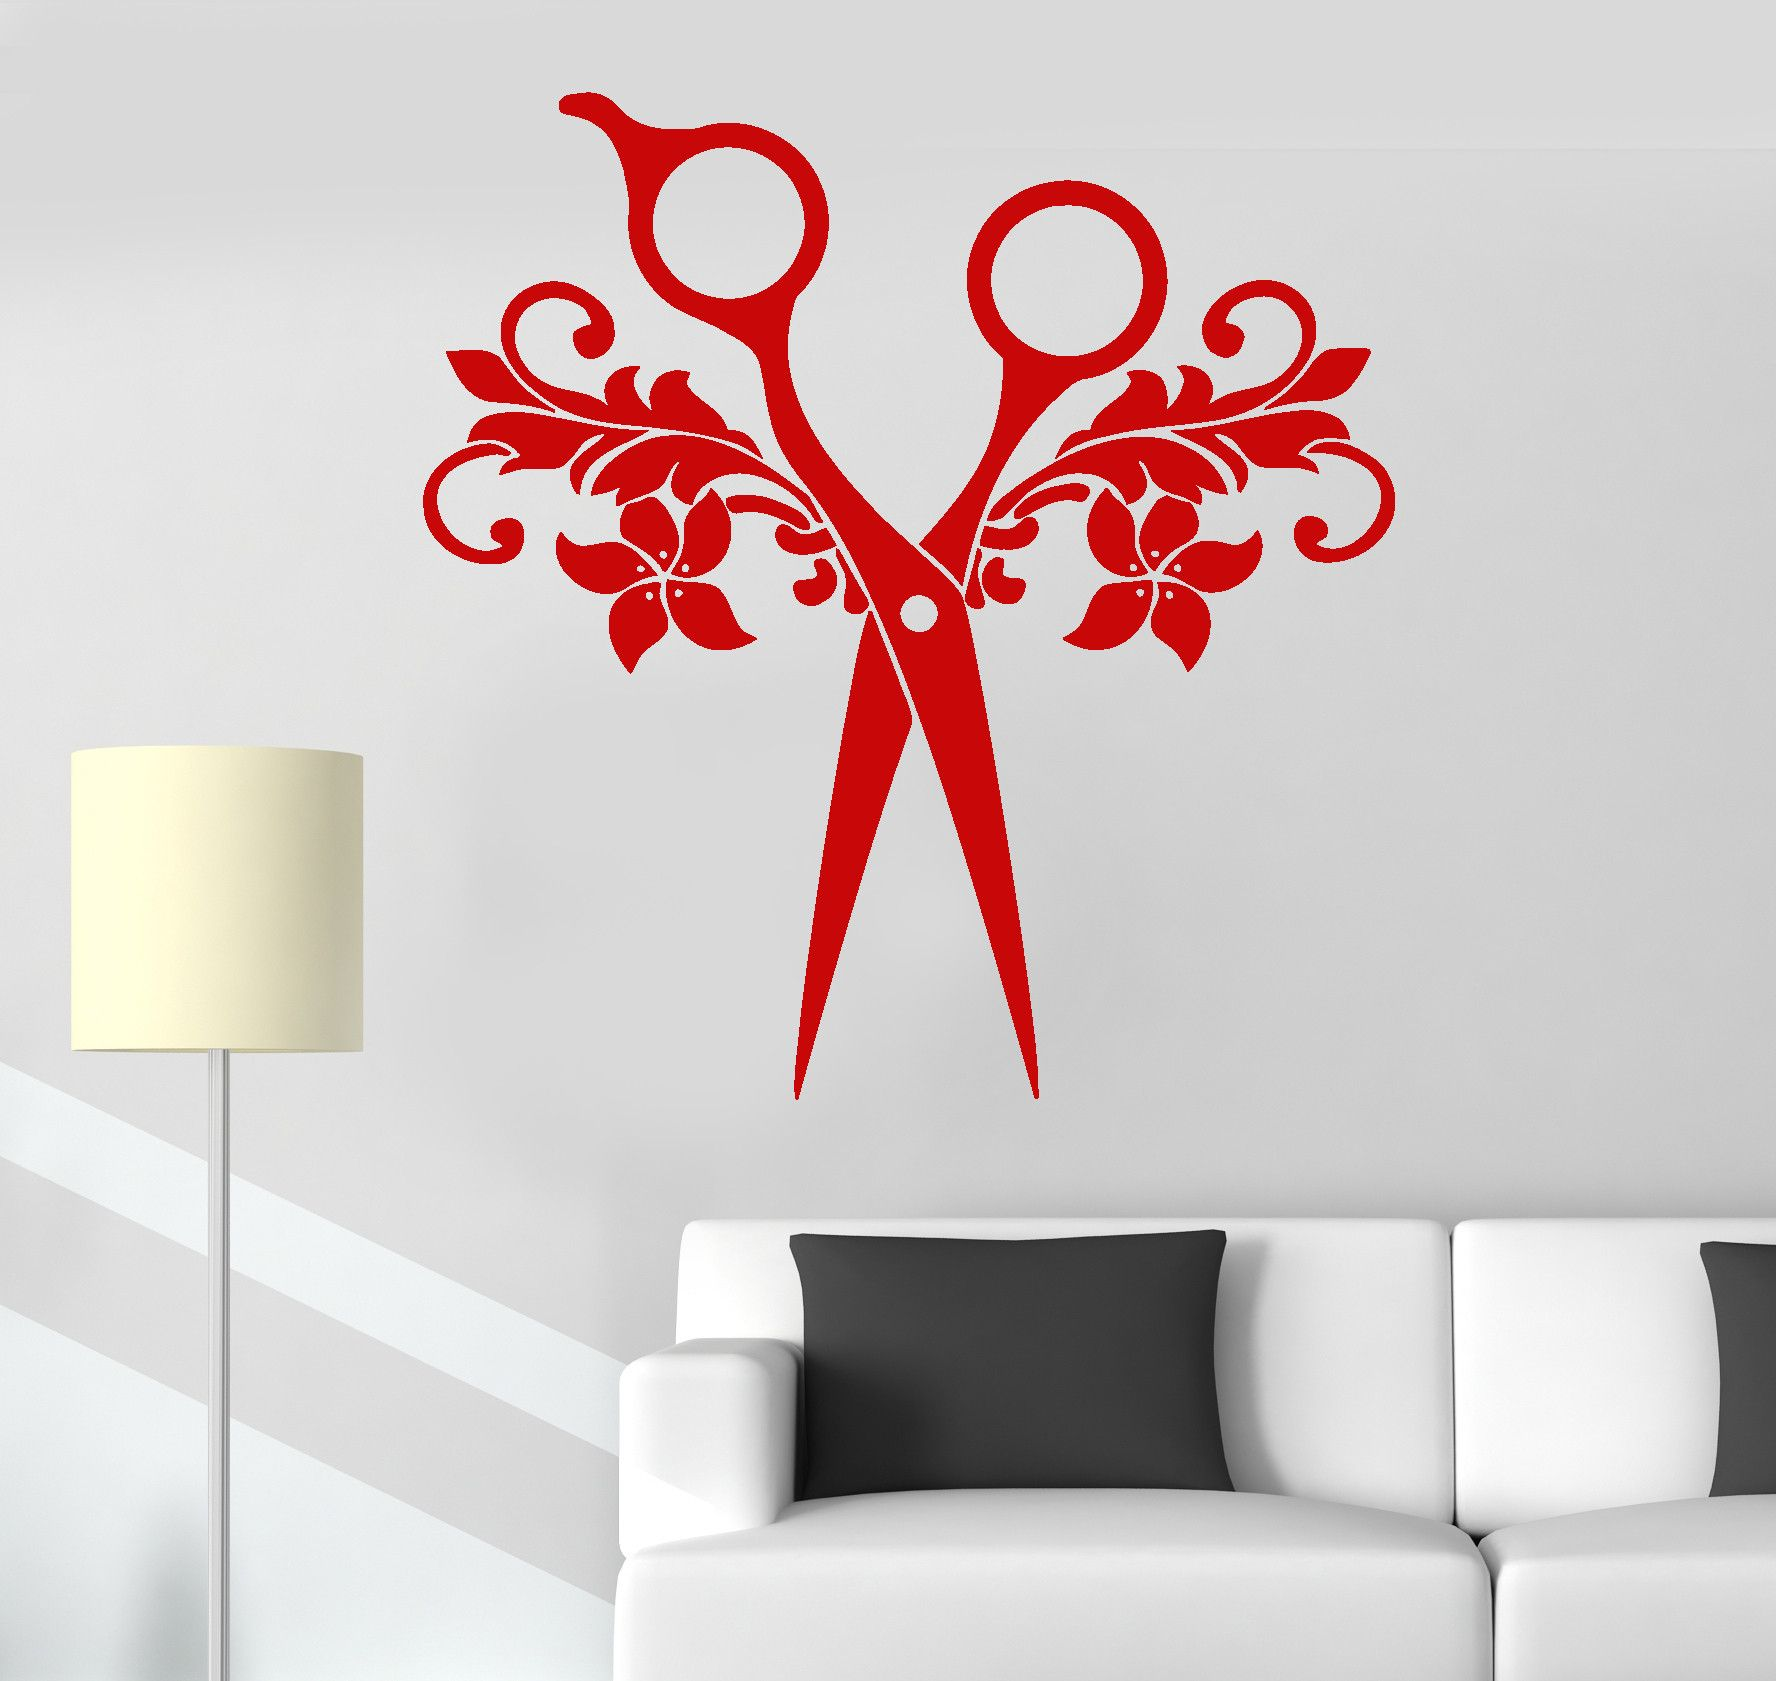 Wall Decal Vinyl Scissors Beauty Salon Hair Barbershop Stickers - Custom vinyl wall decals for hair salonvinyl wall decal hair salon stylist hairdresser barber shop